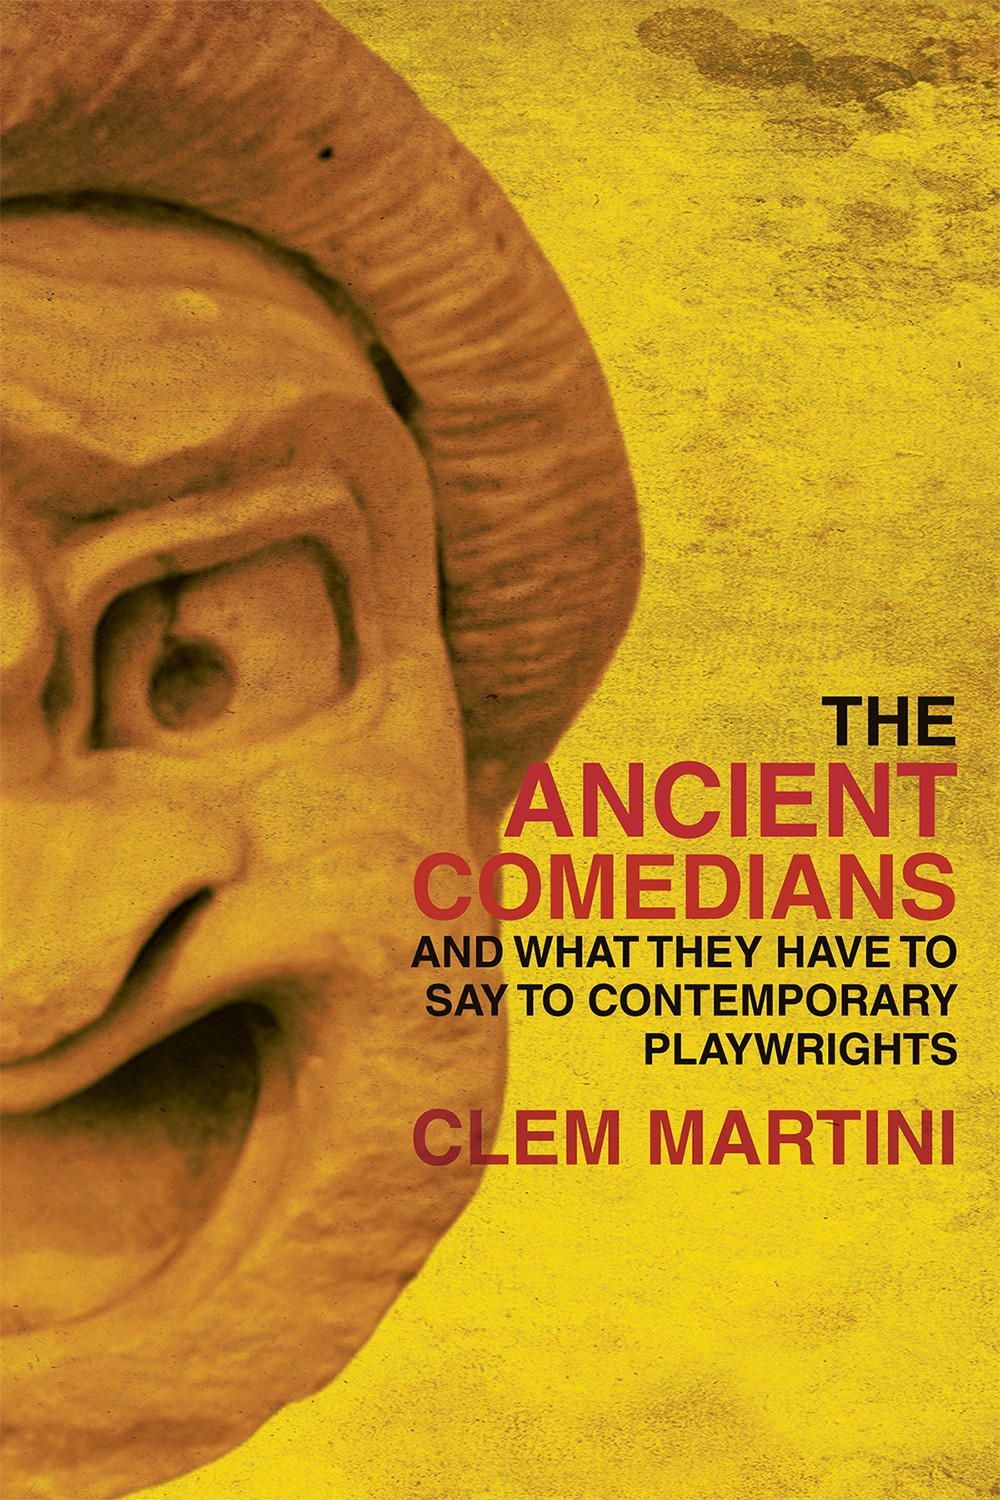 The Ancient Comedians and What They Have to Say to Contemporary Playwrights (print)